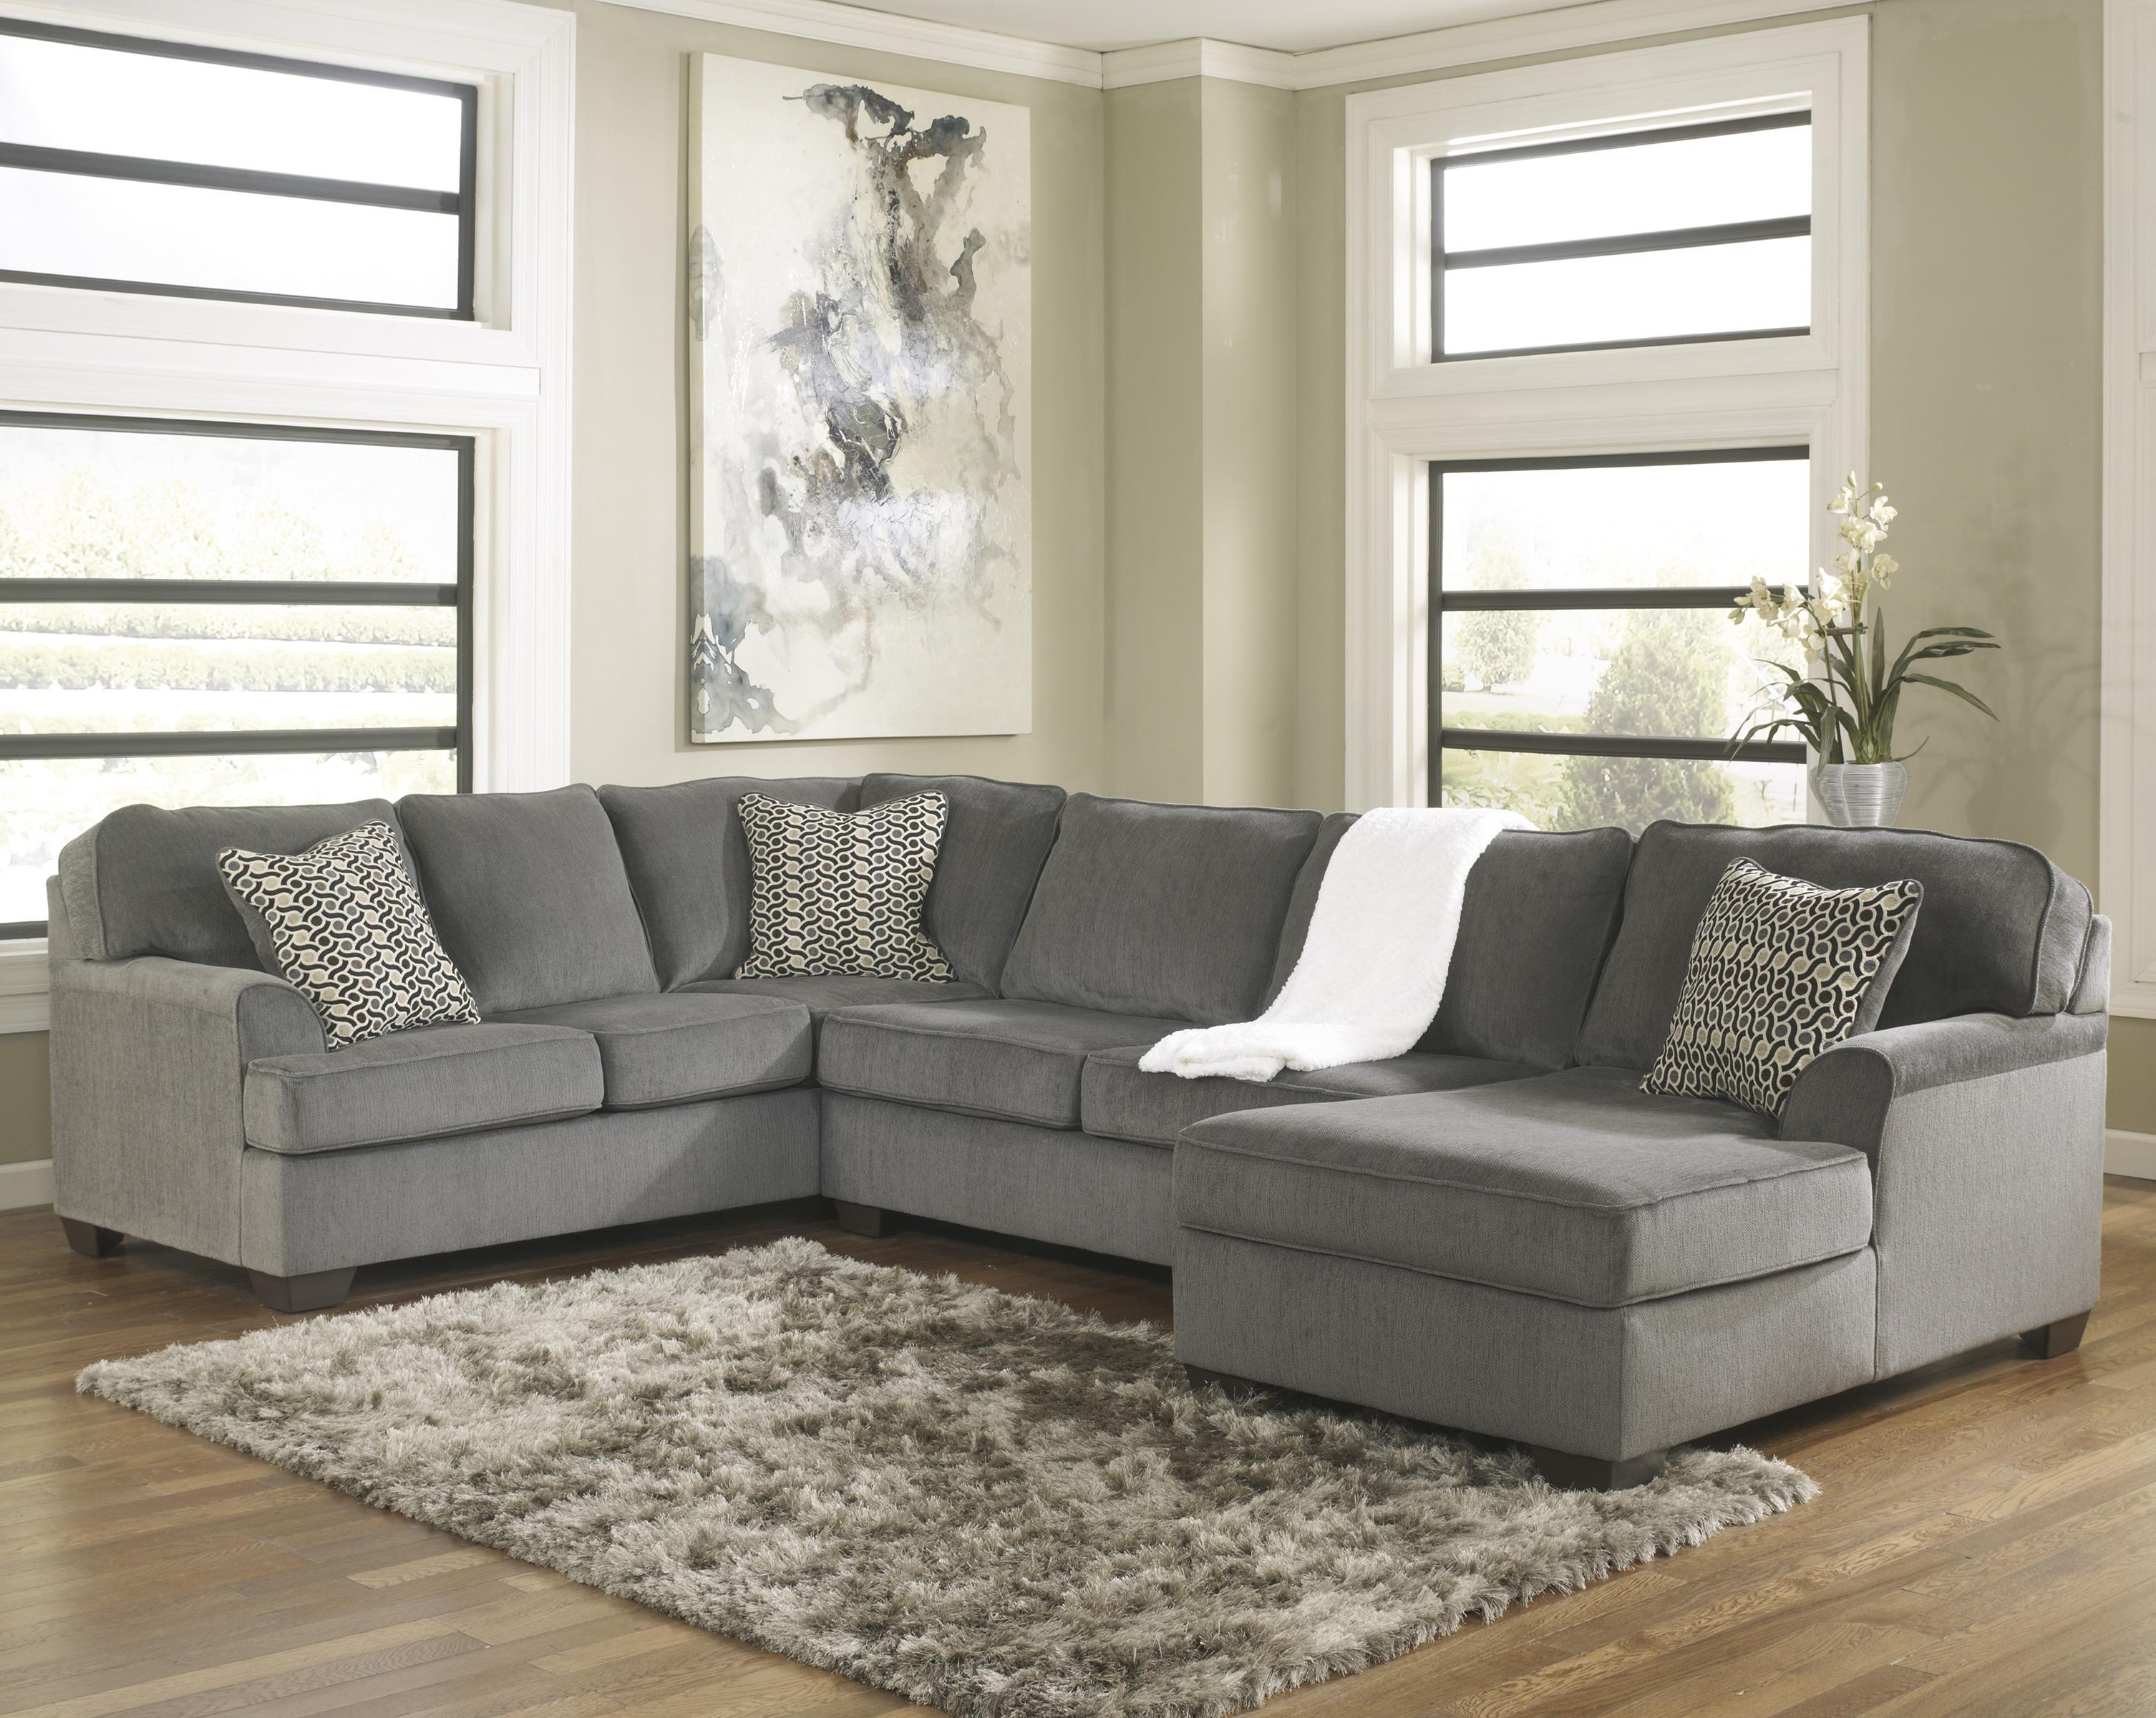 Ashley Furniture Sofa Chaises Intended For Well Liked Ashley Furniture Loric – Smoke Contemporary 3 Piece Sectional With (View 1 of 15)